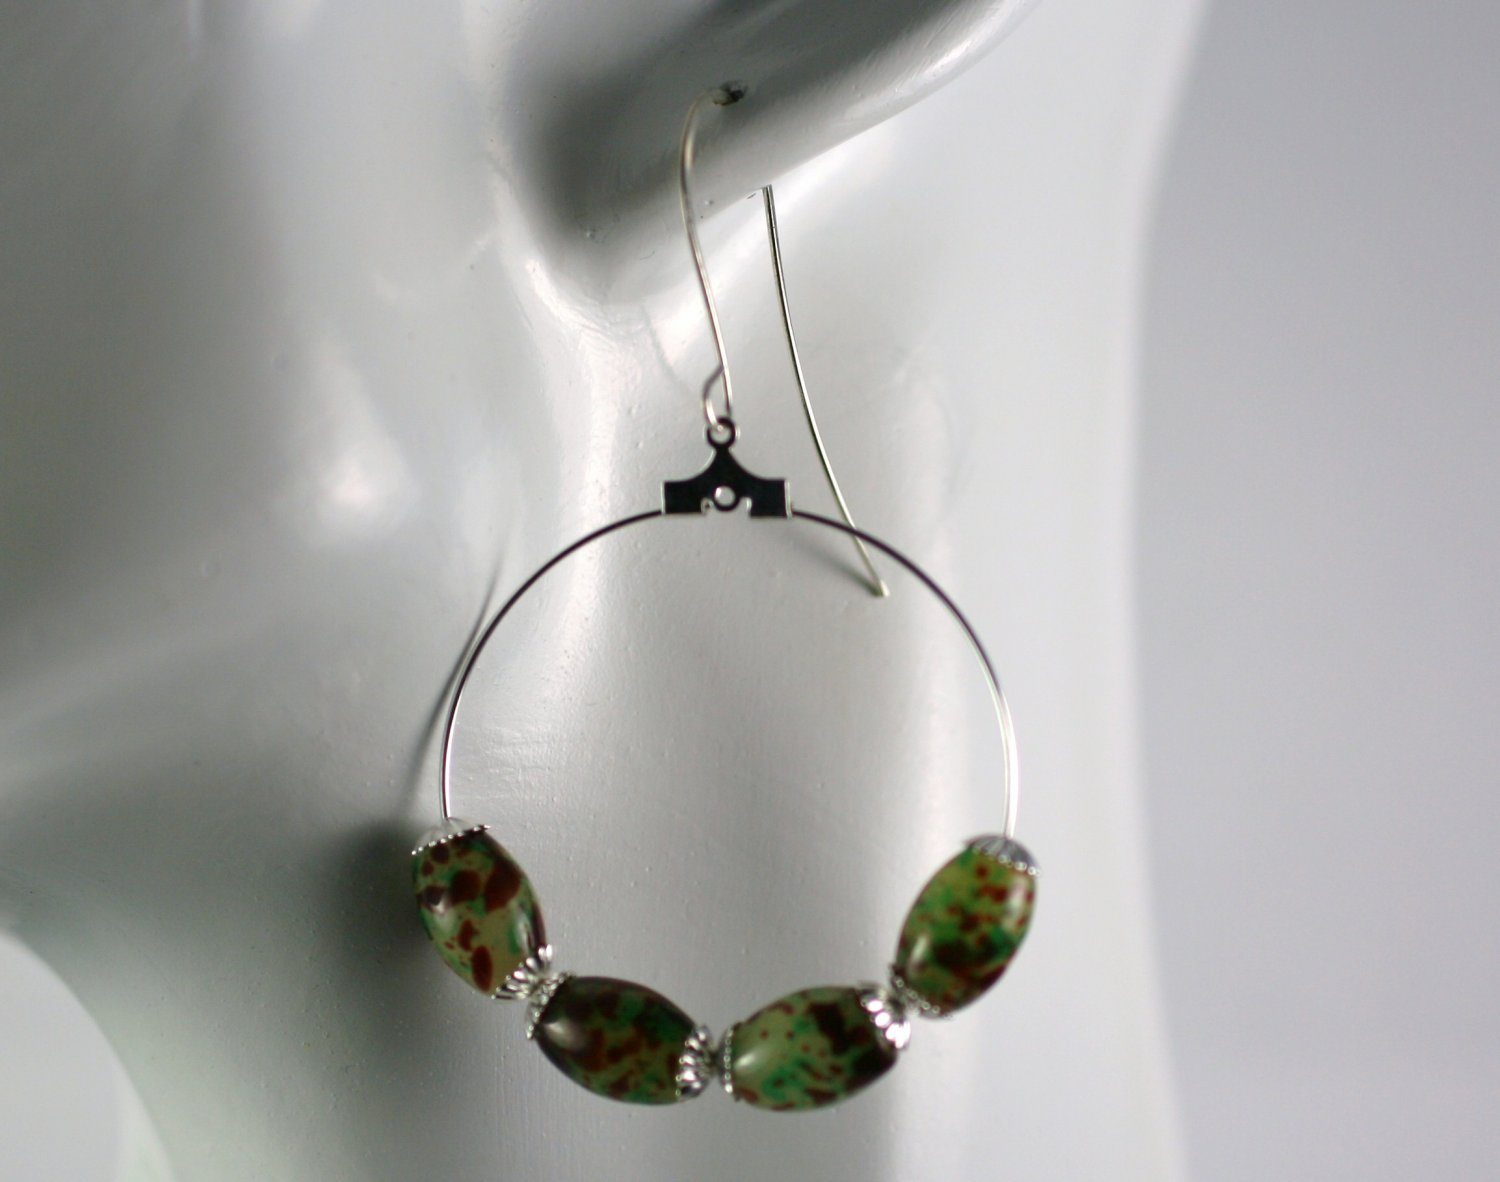 Silver Hoop Earrings with Green and Brown Glass Beads 1.5 in.  Handcrafted Jewelry